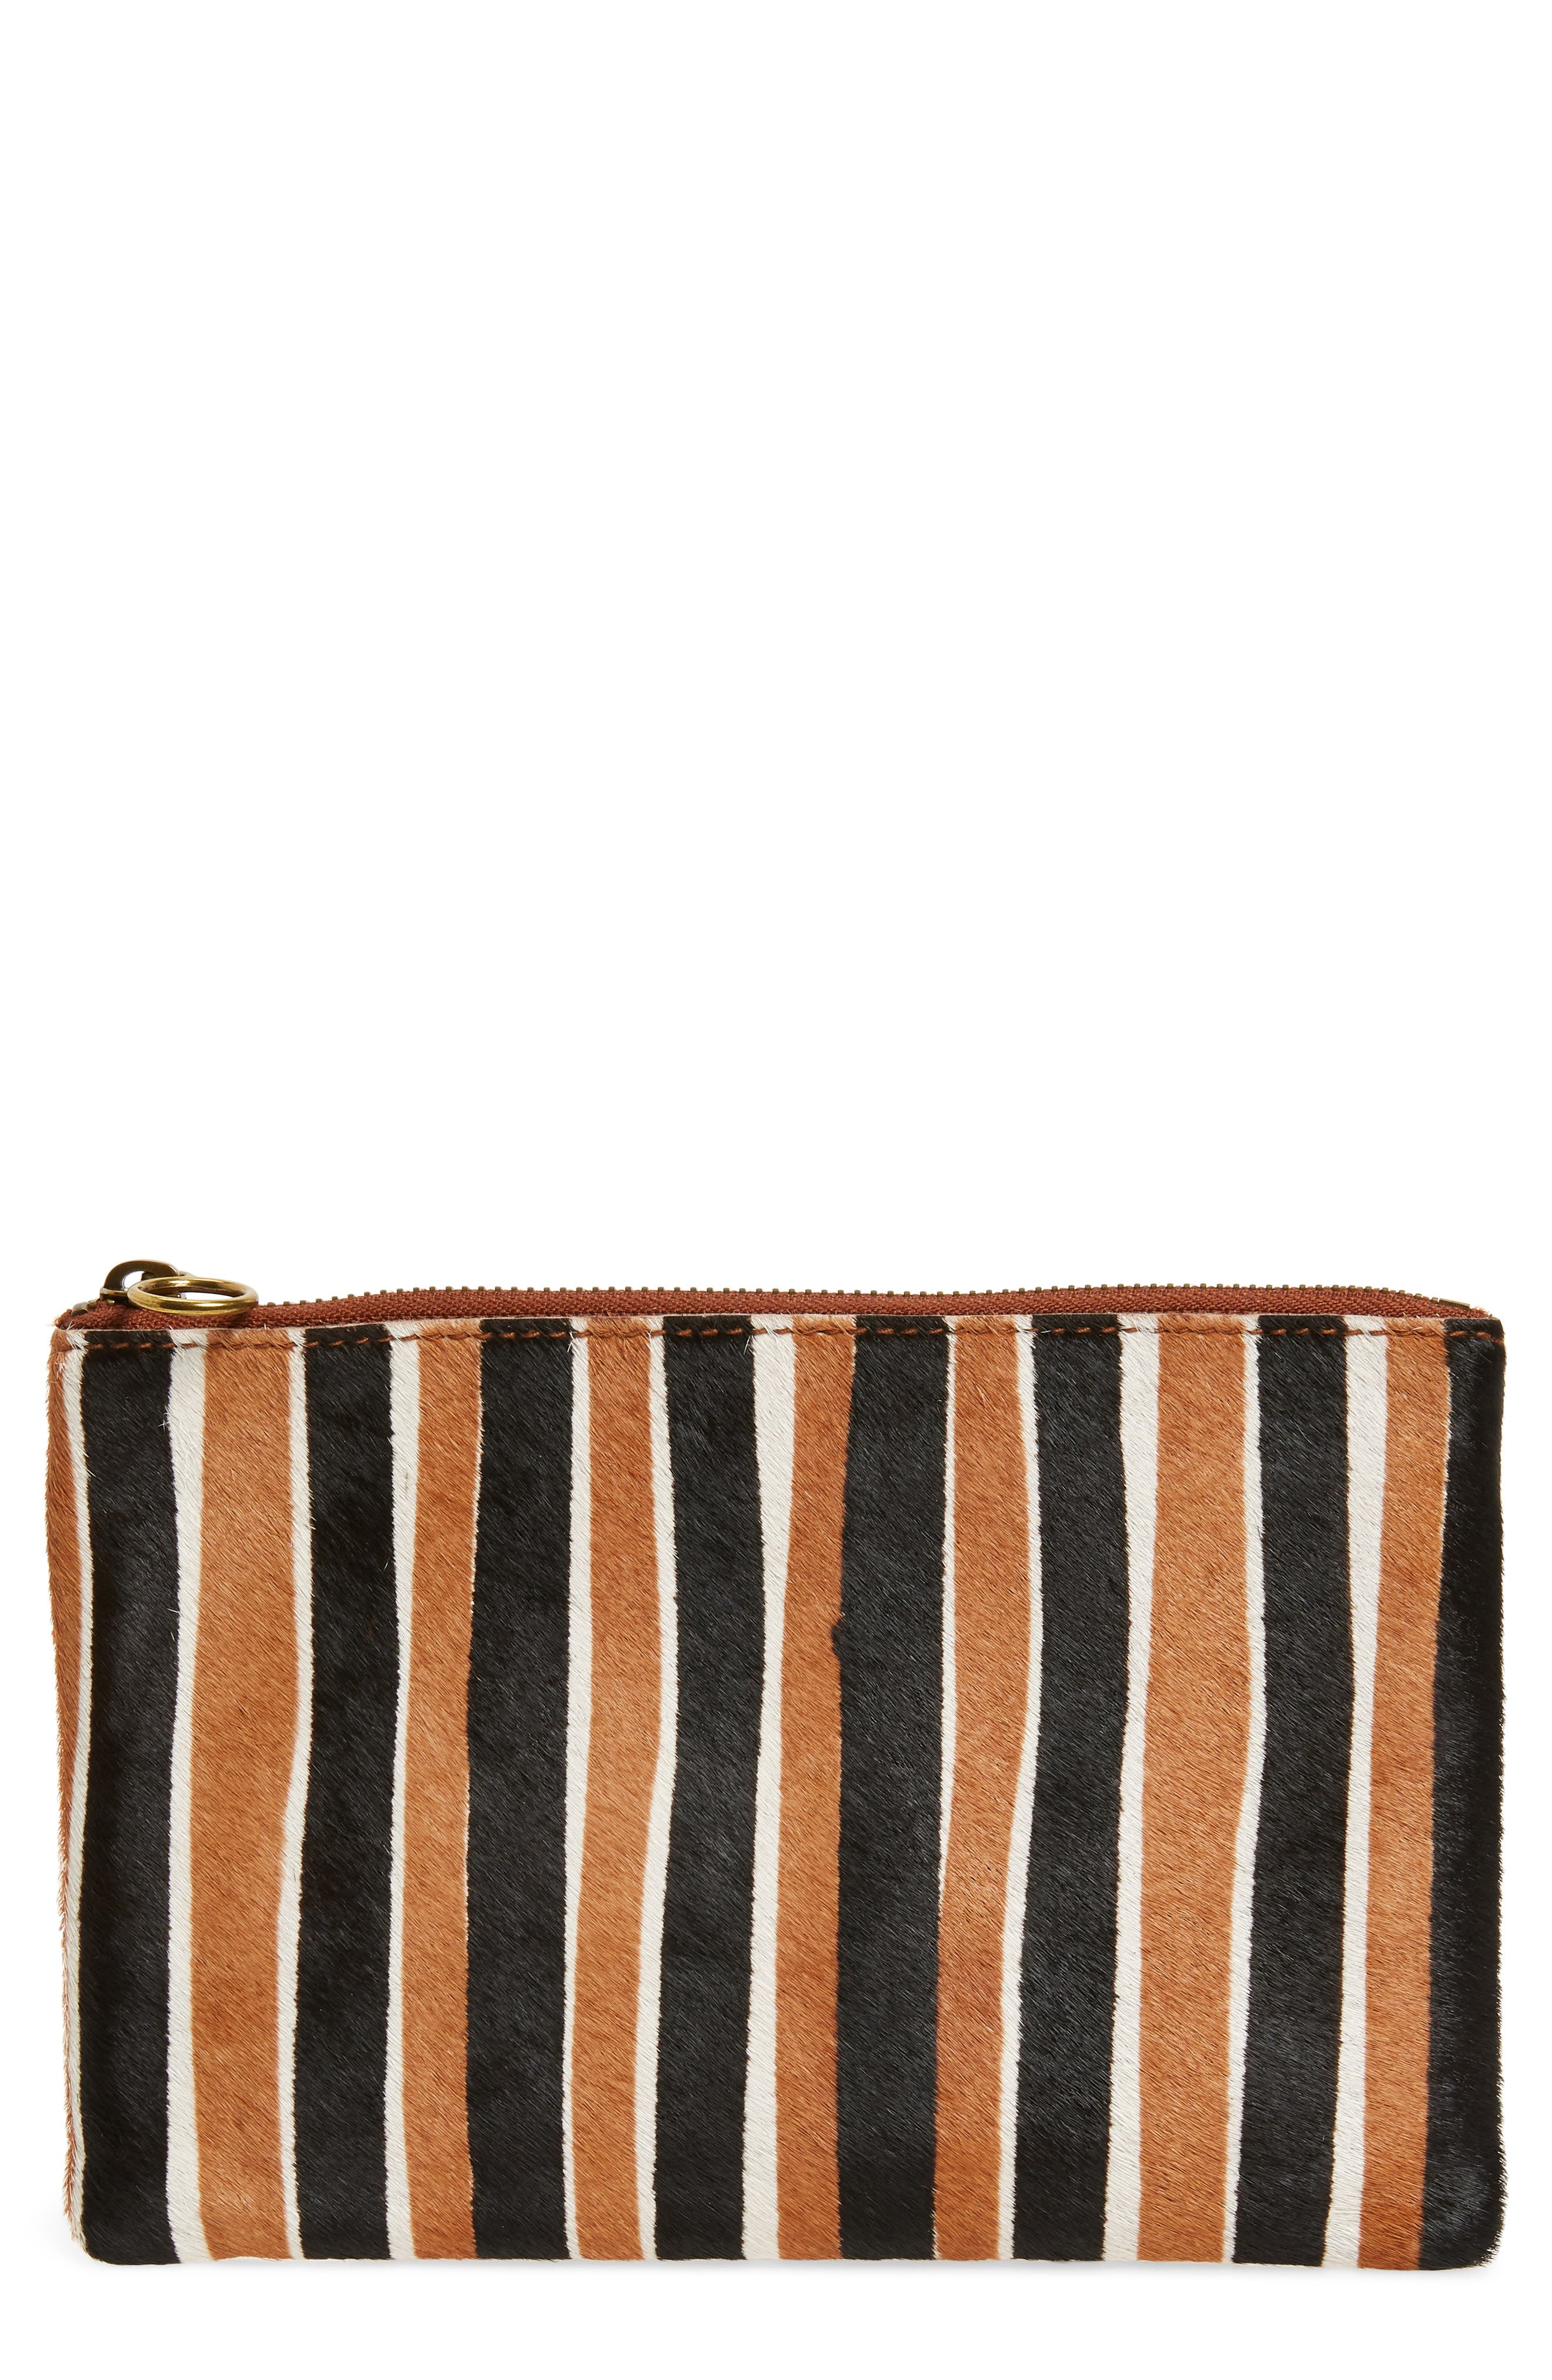 The Leather Pouch Clutch in Genuine Calf Hair,                             Main thumbnail 1, color,                             ACORN MULTI